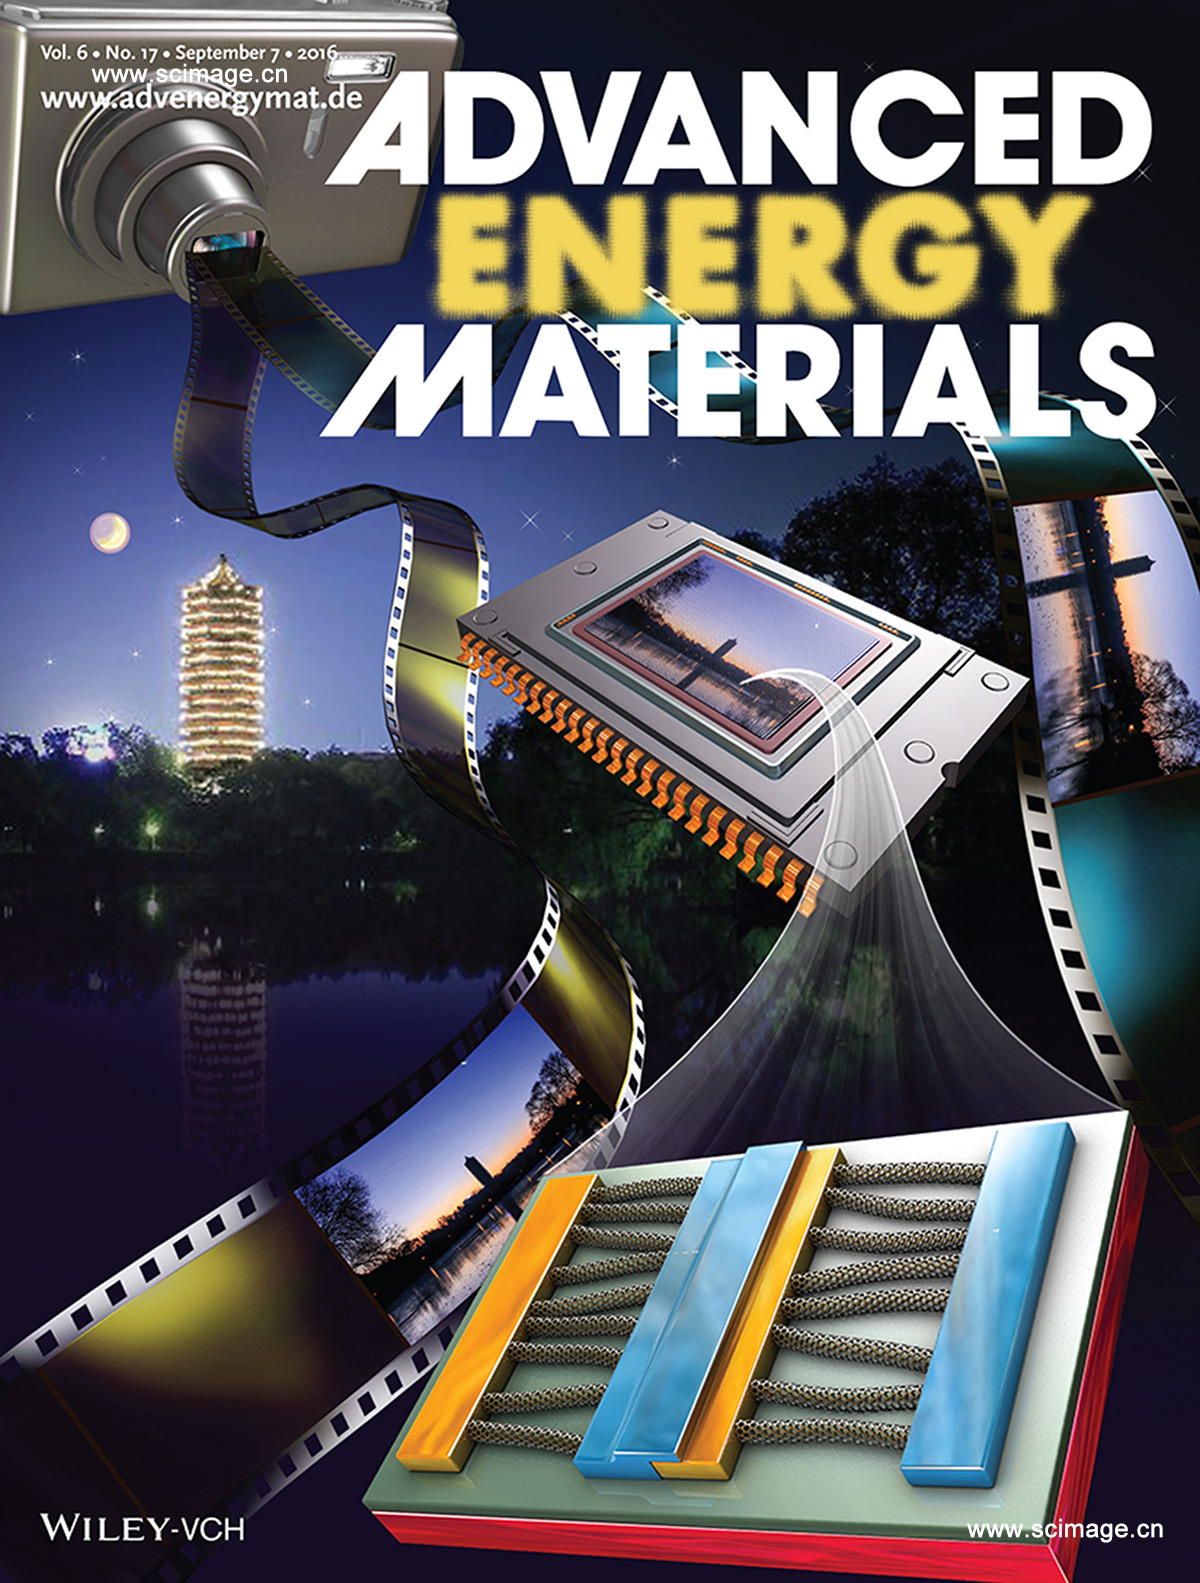 Photovoltaic Devices: Toward High-Performance Carbon Nanotube Photovoltaic Devices